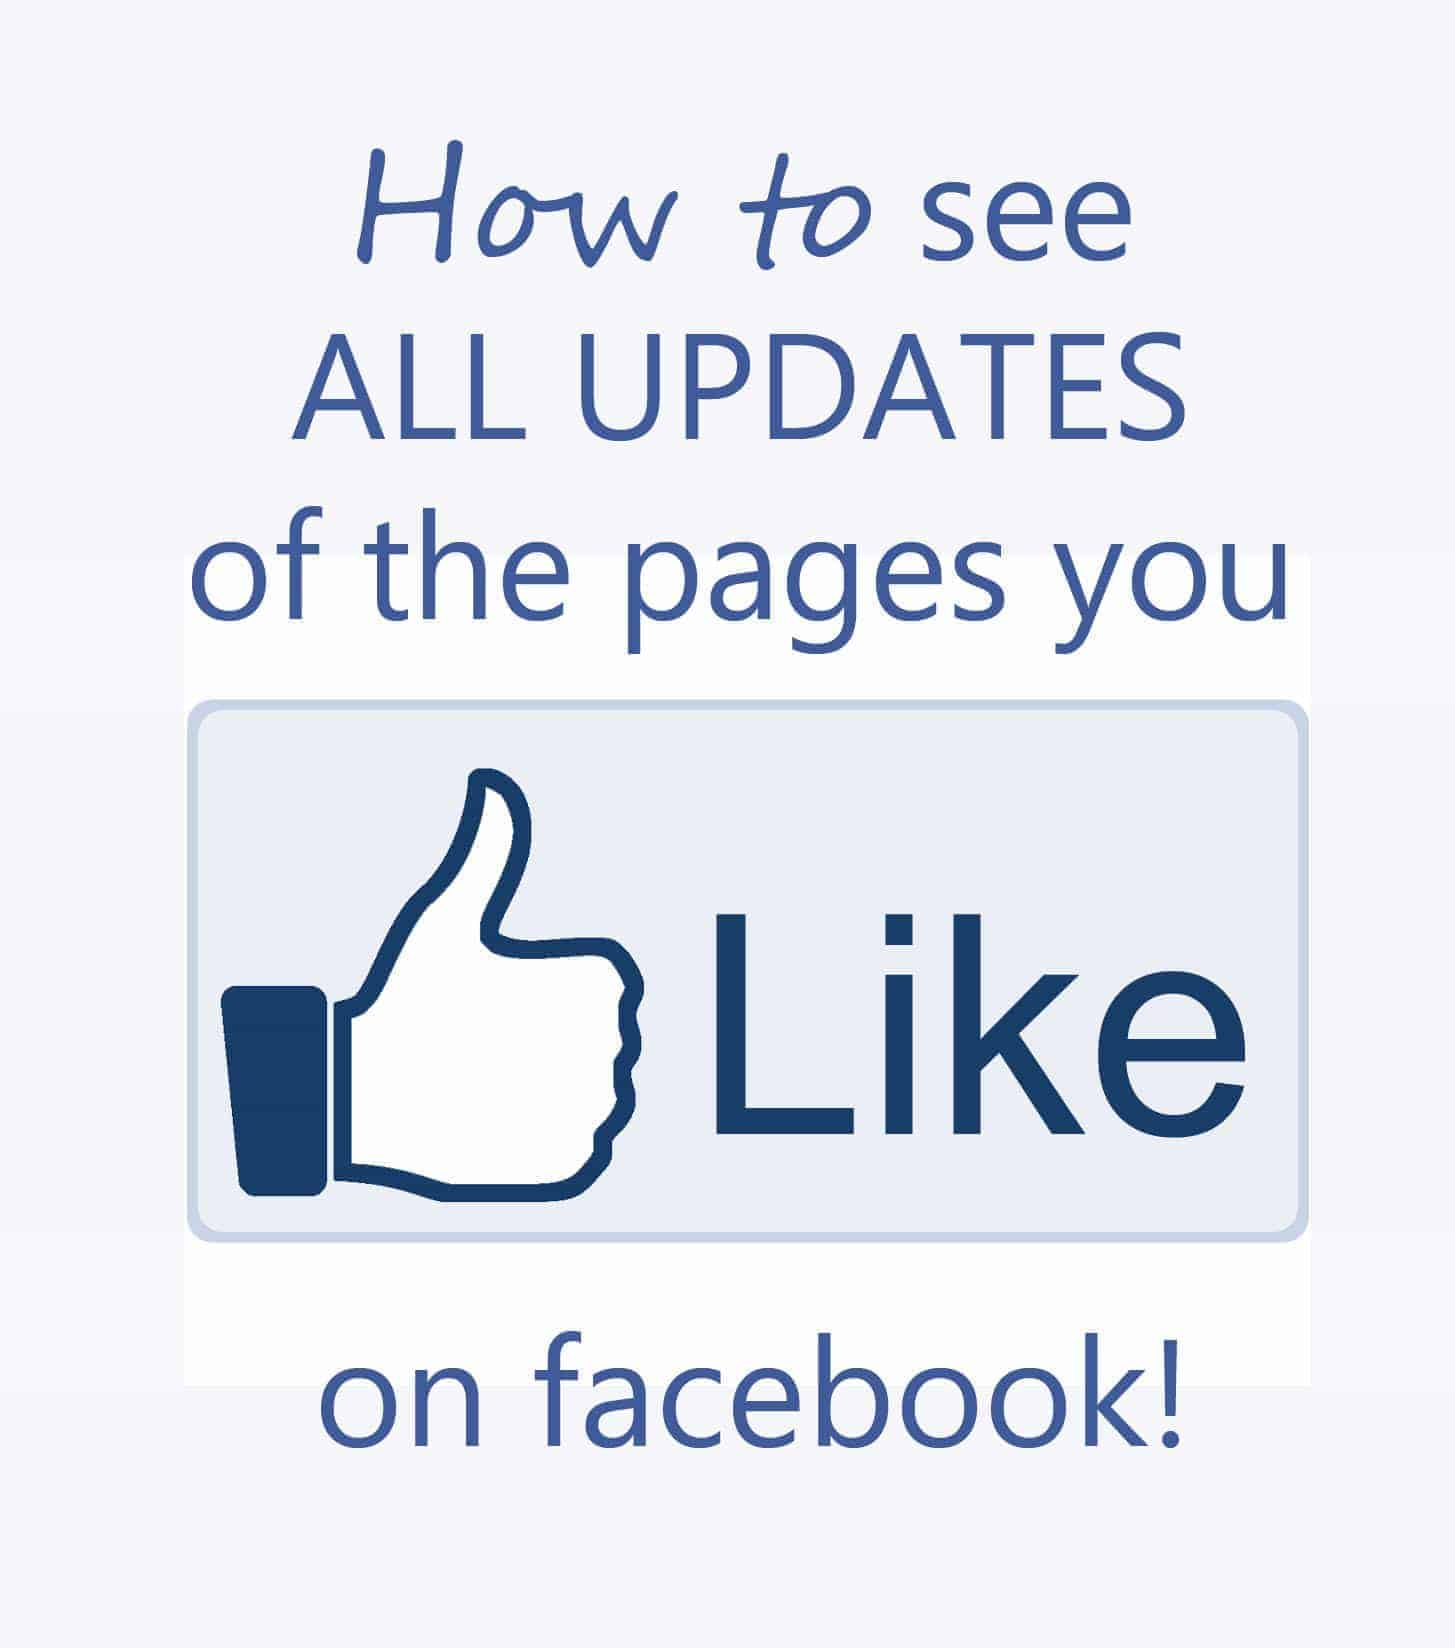 How to See All Updates on the pages you like on facebook!